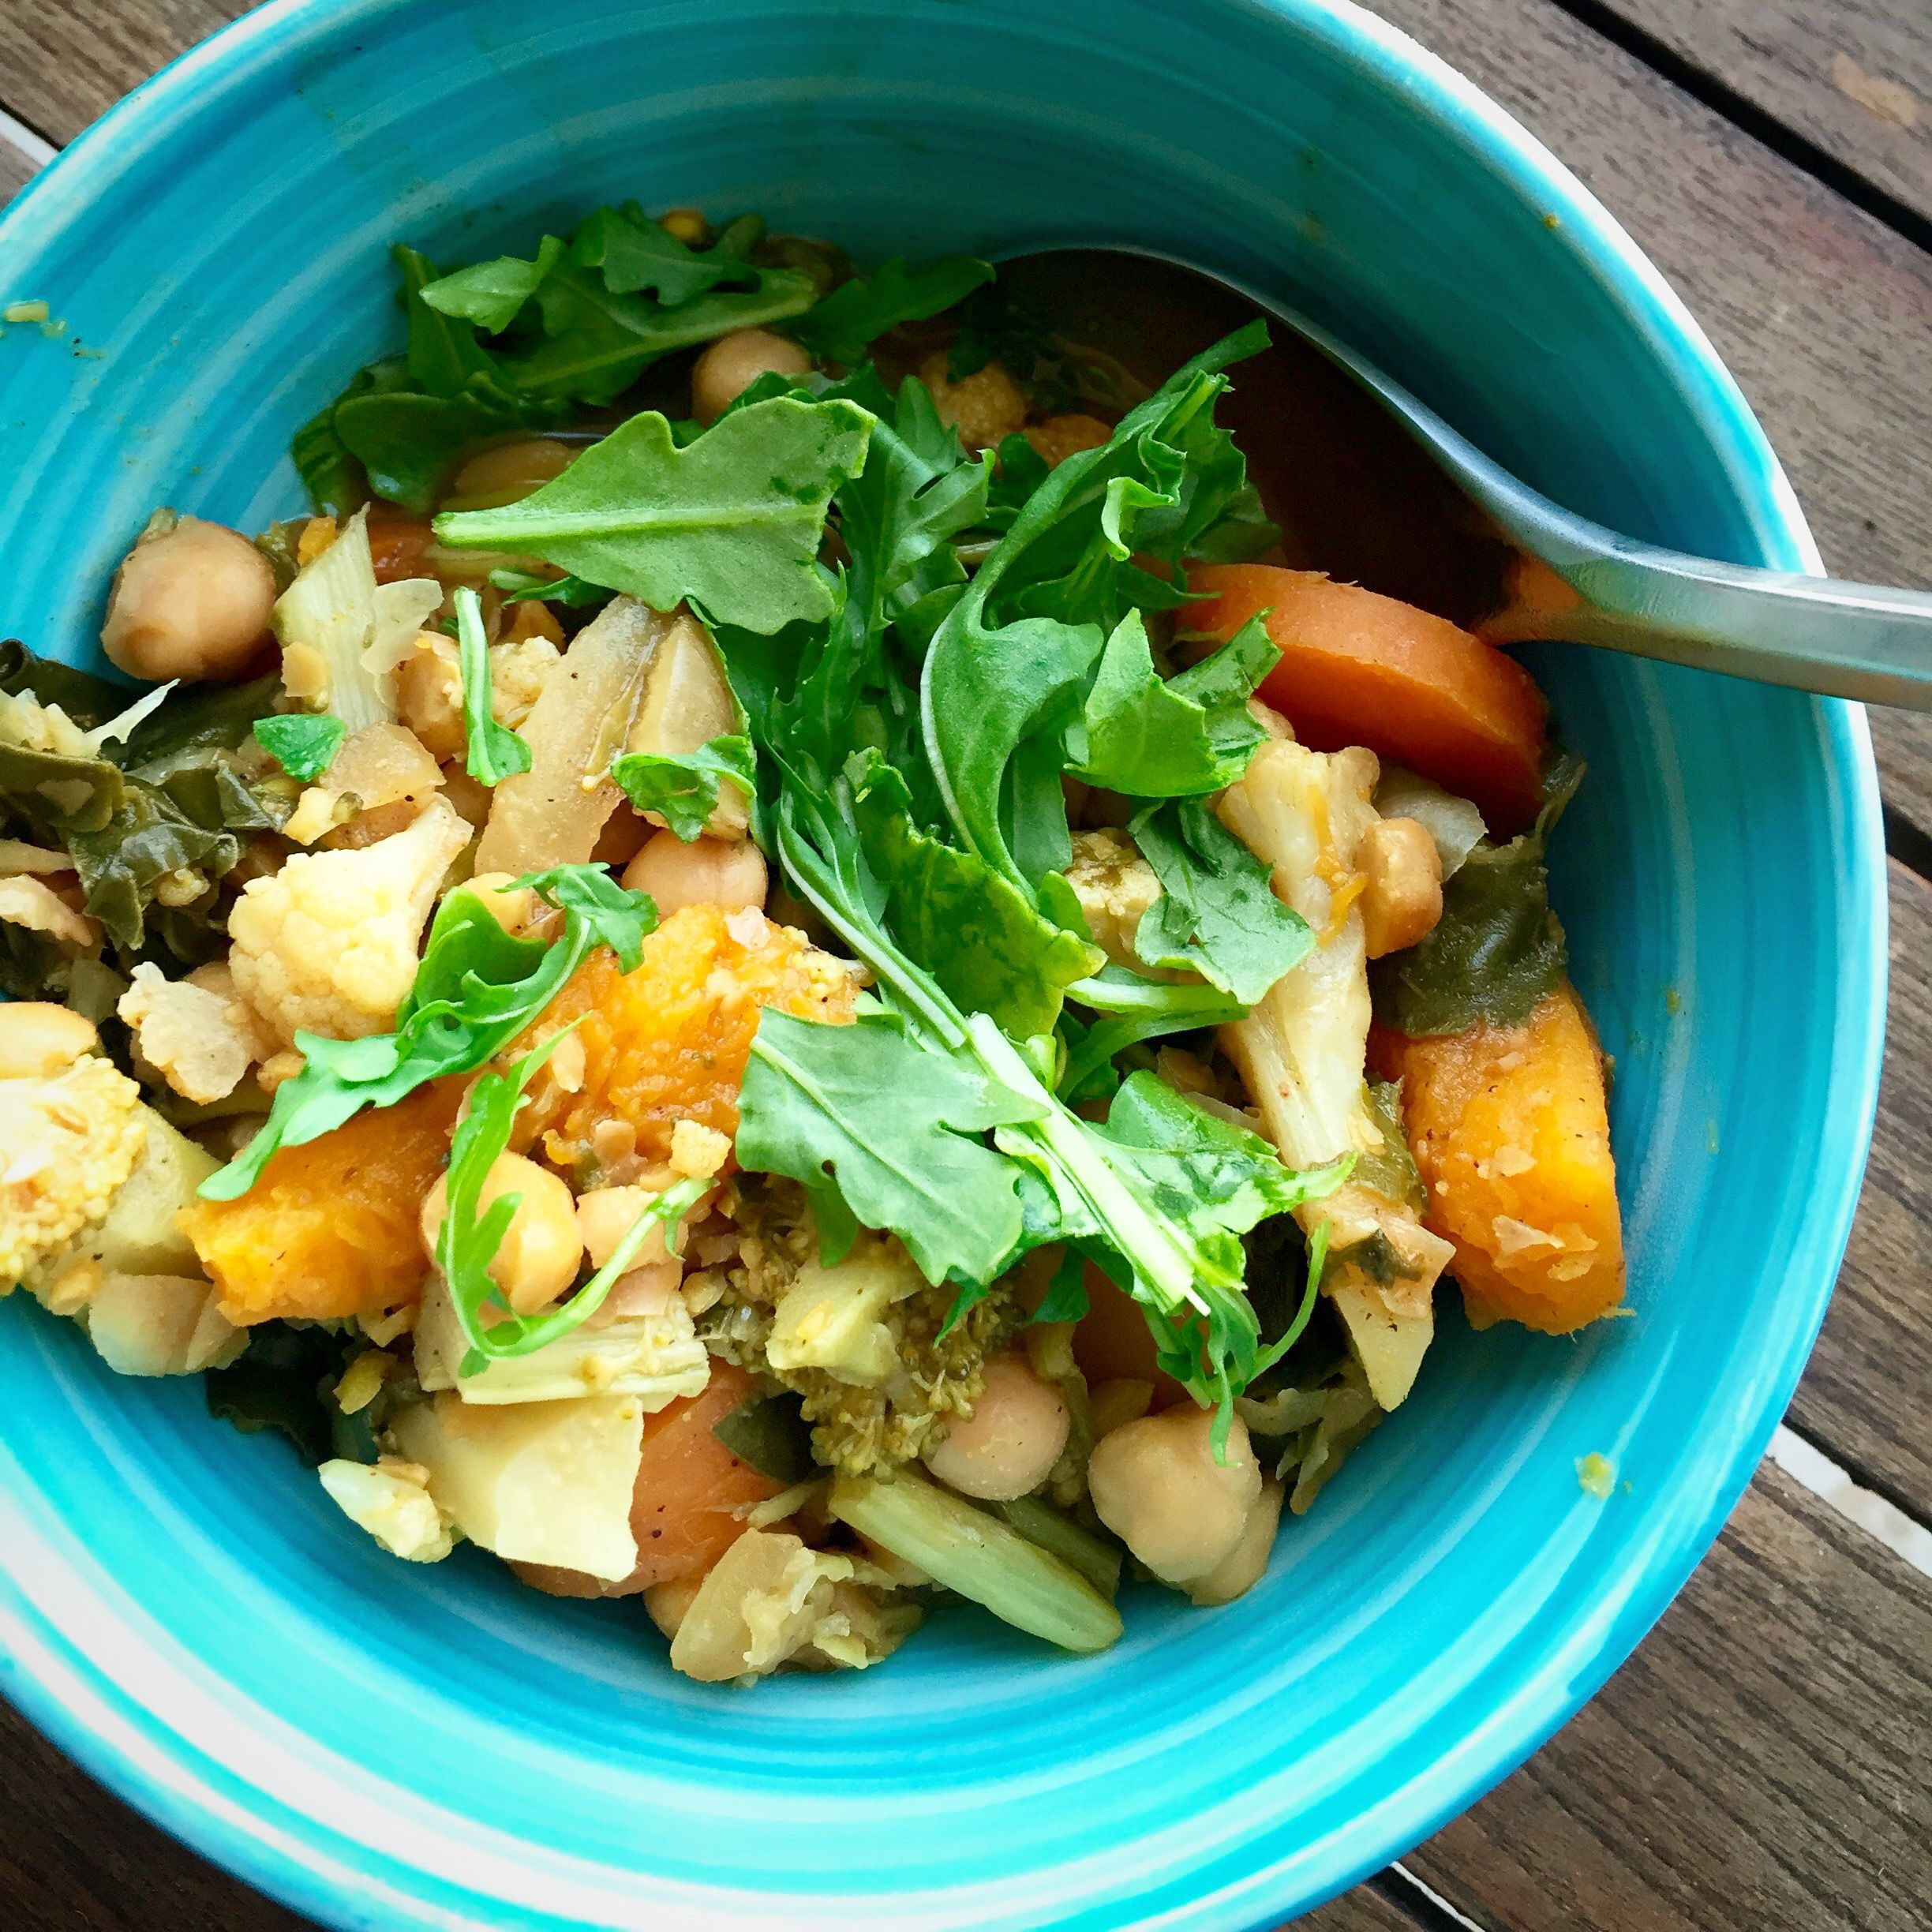 Moroccan-inspired chickpeas with chard. Vegan, earthy, wonderfully spiced